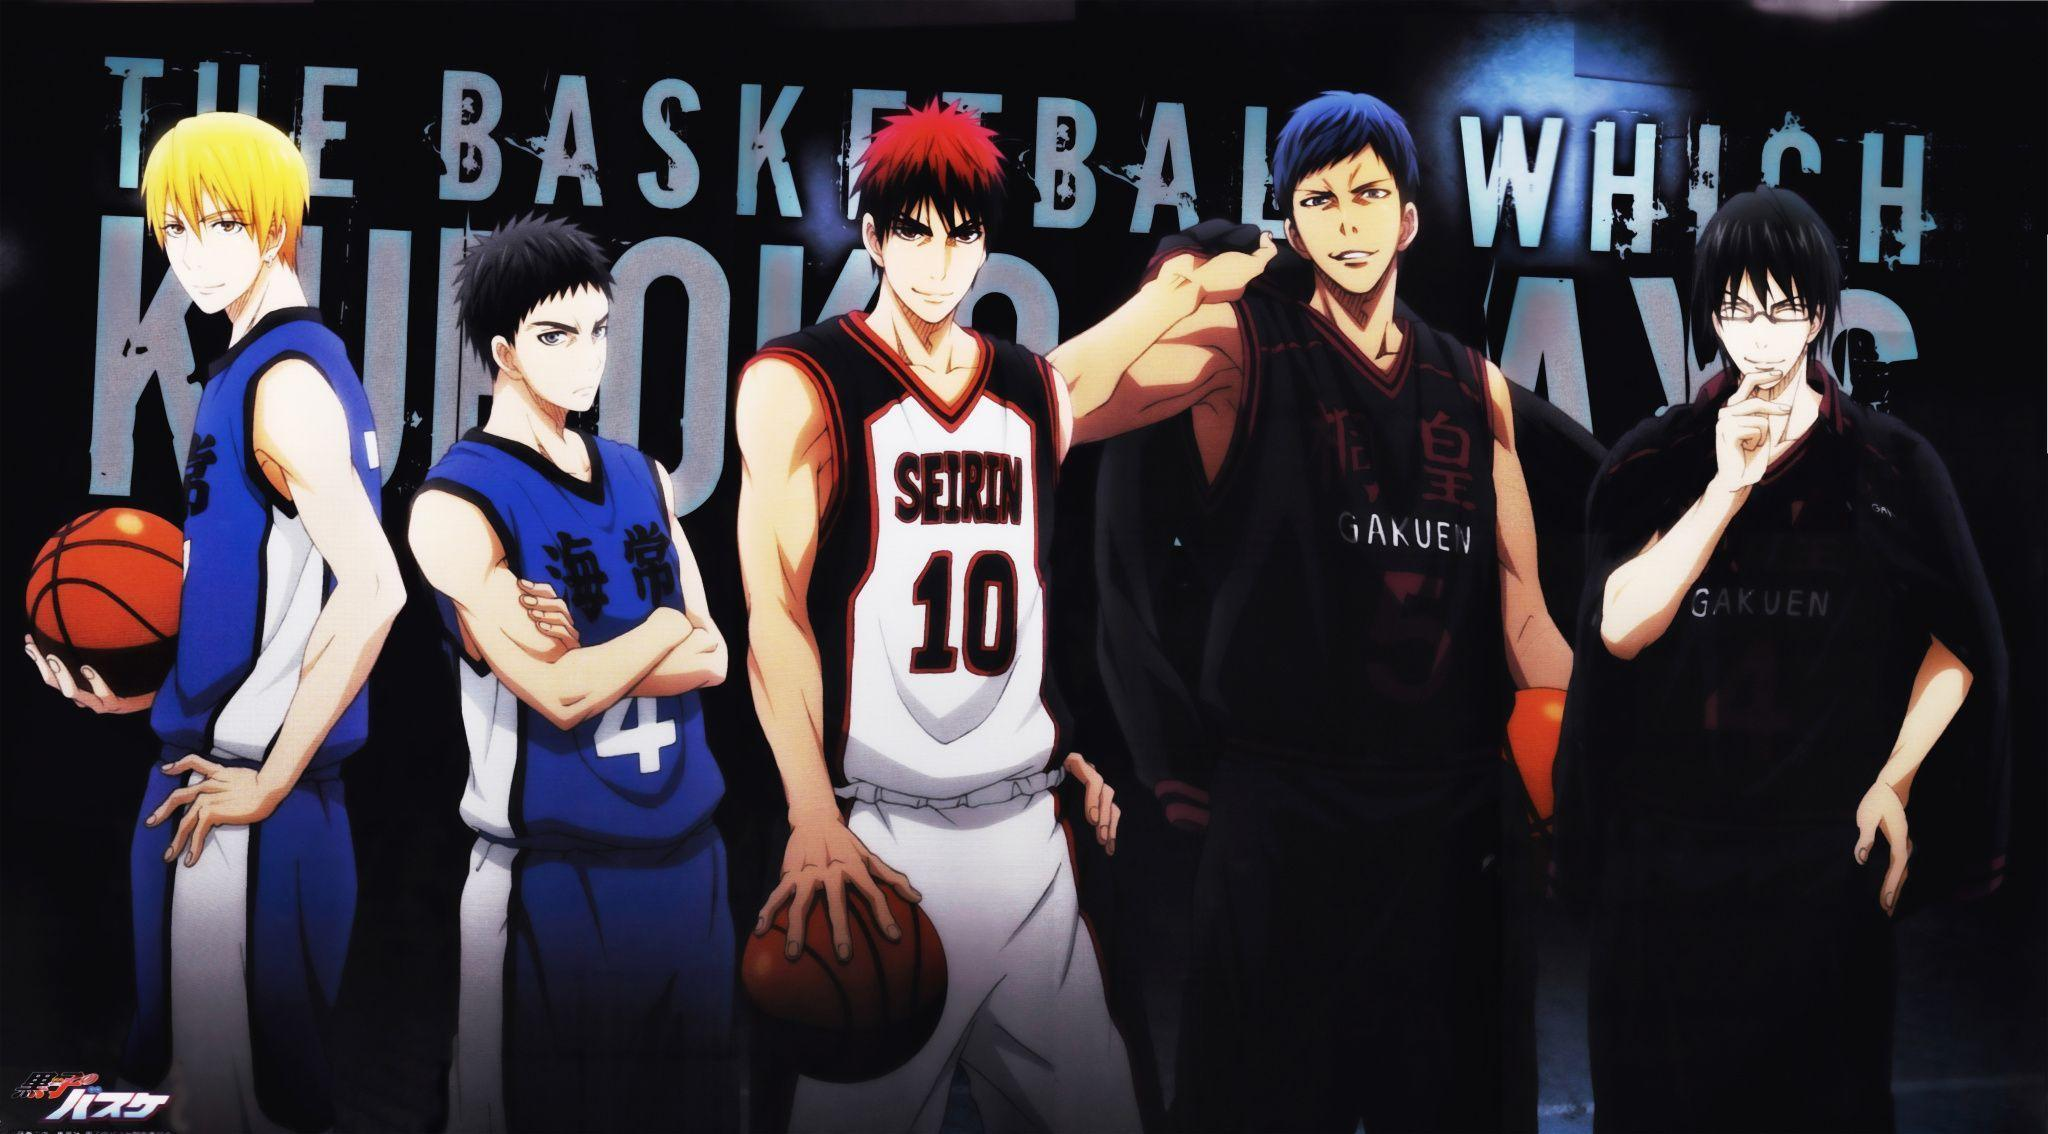 Kuroko no Basket Seirin High wallpaper | 3299x2283 | 177336 ...